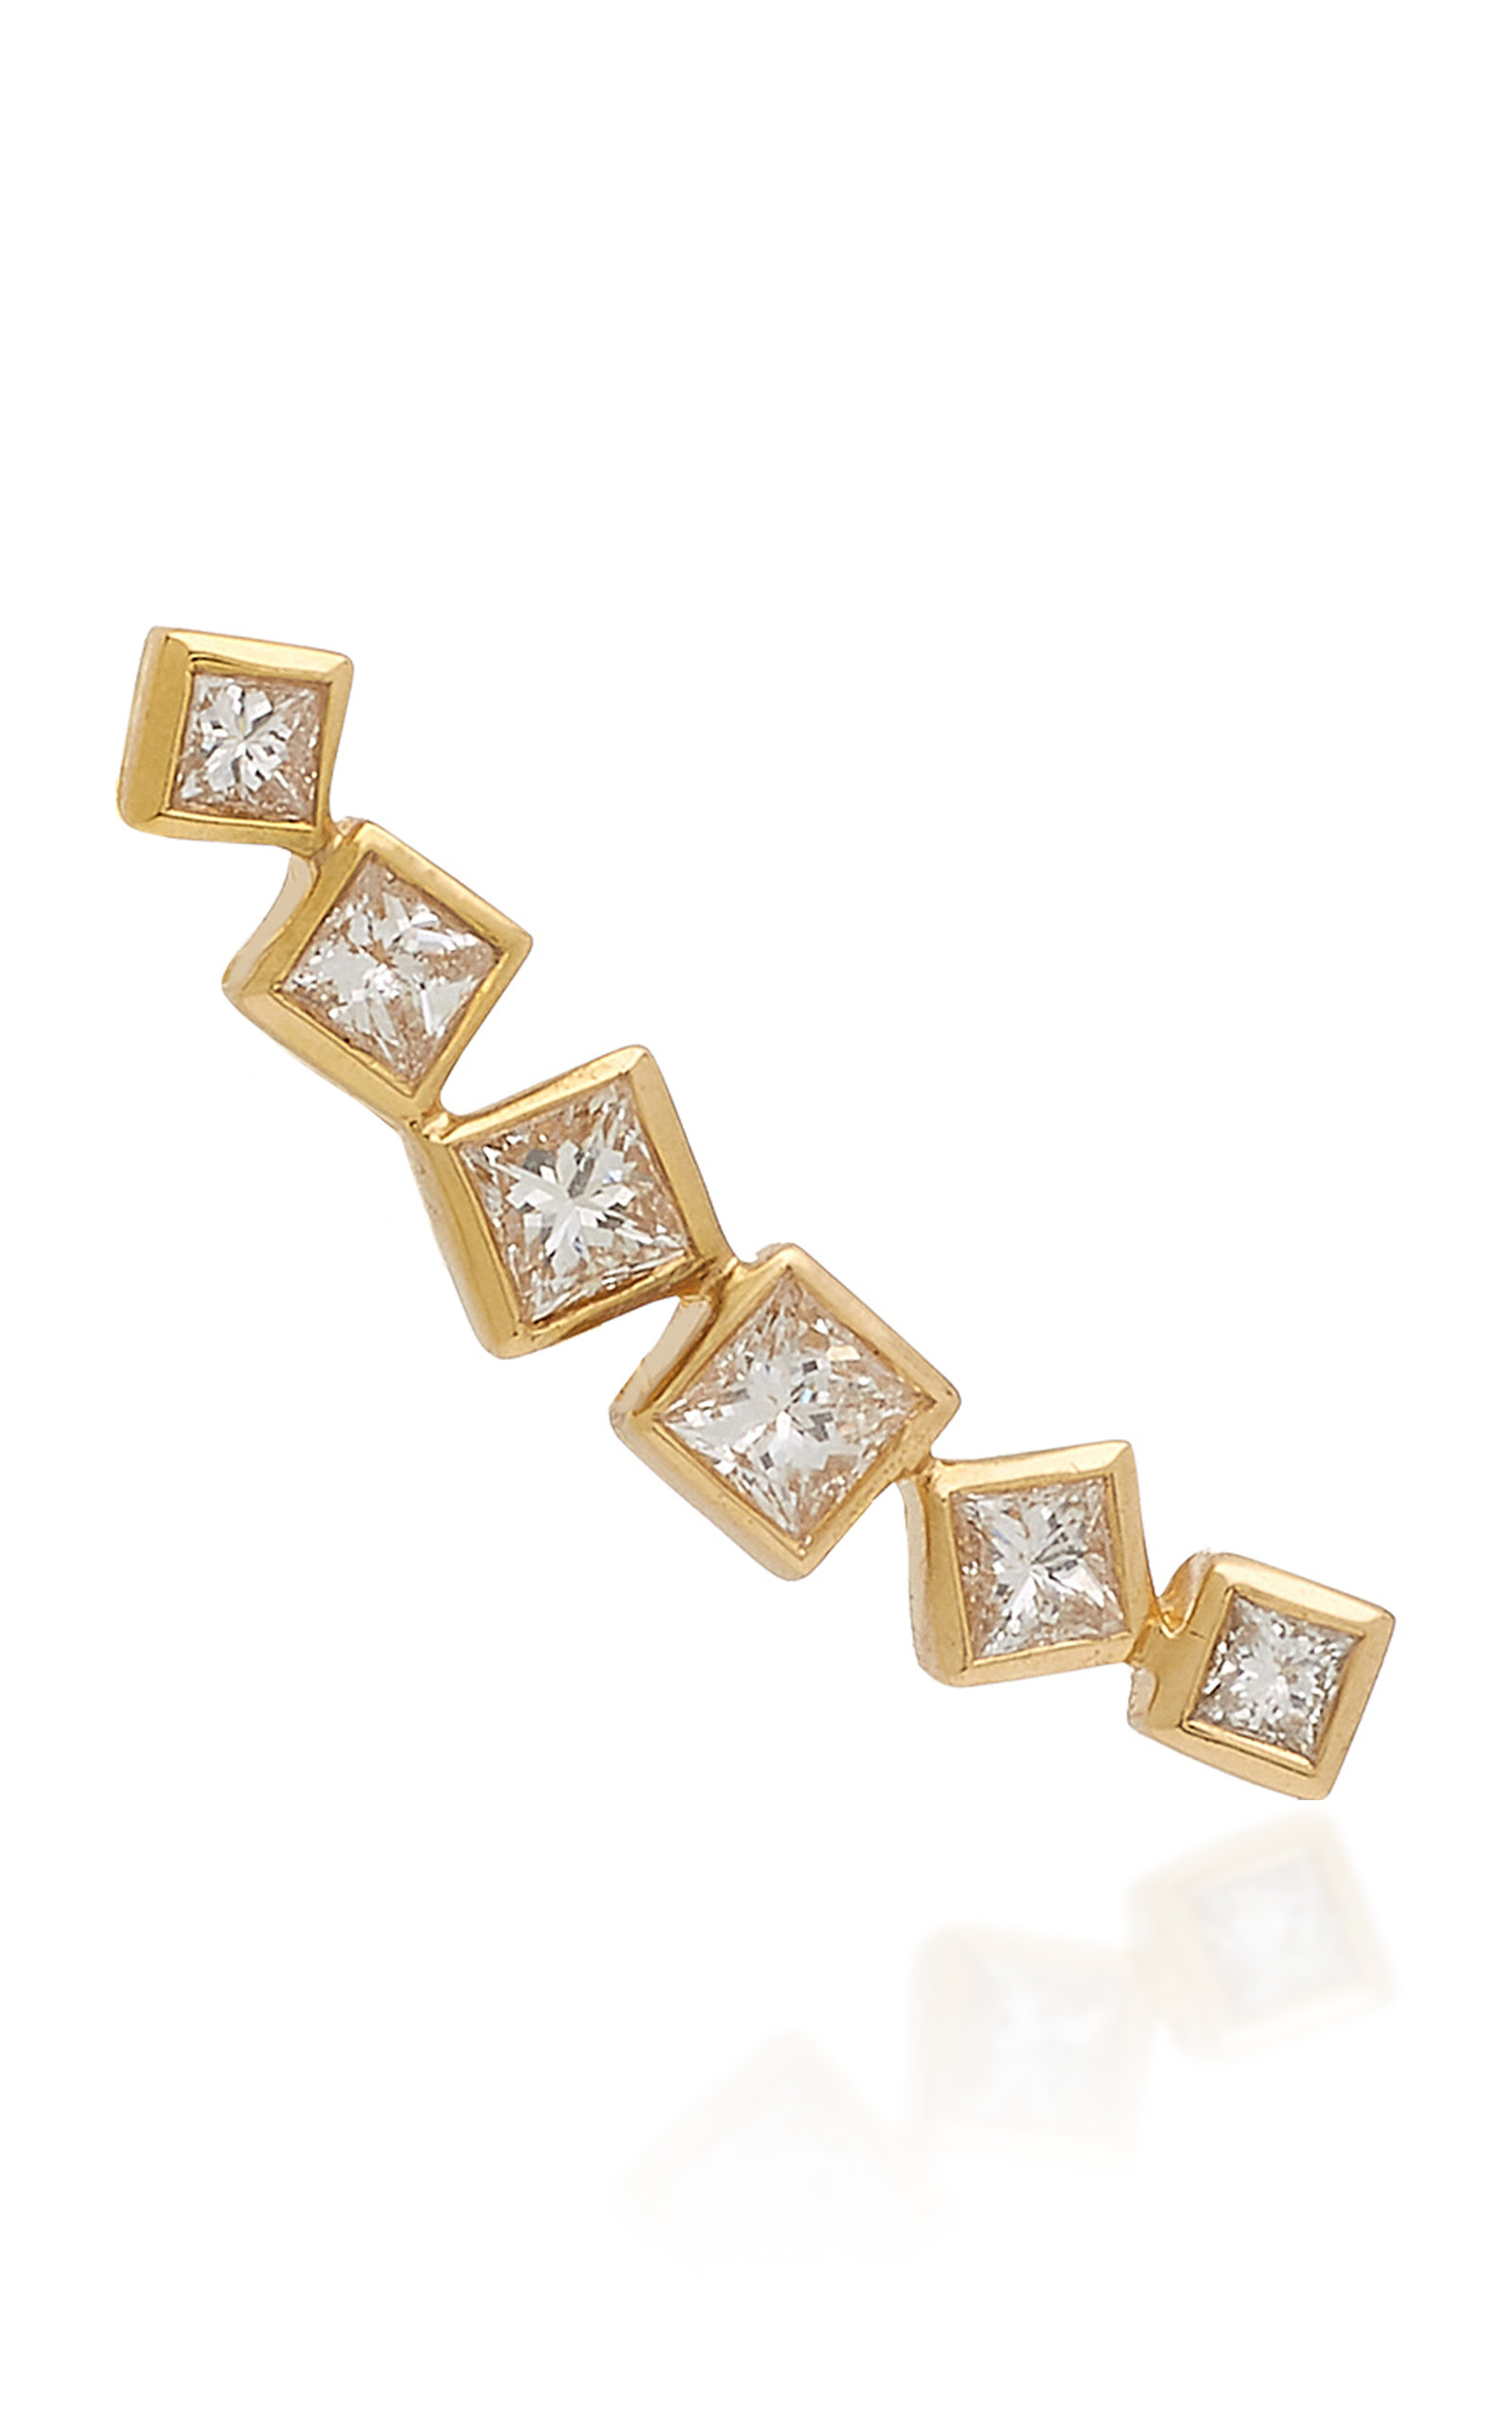 OCTAVIA ELIZABETH IVY GOLD AND DIAMOND EAR CLIMBER